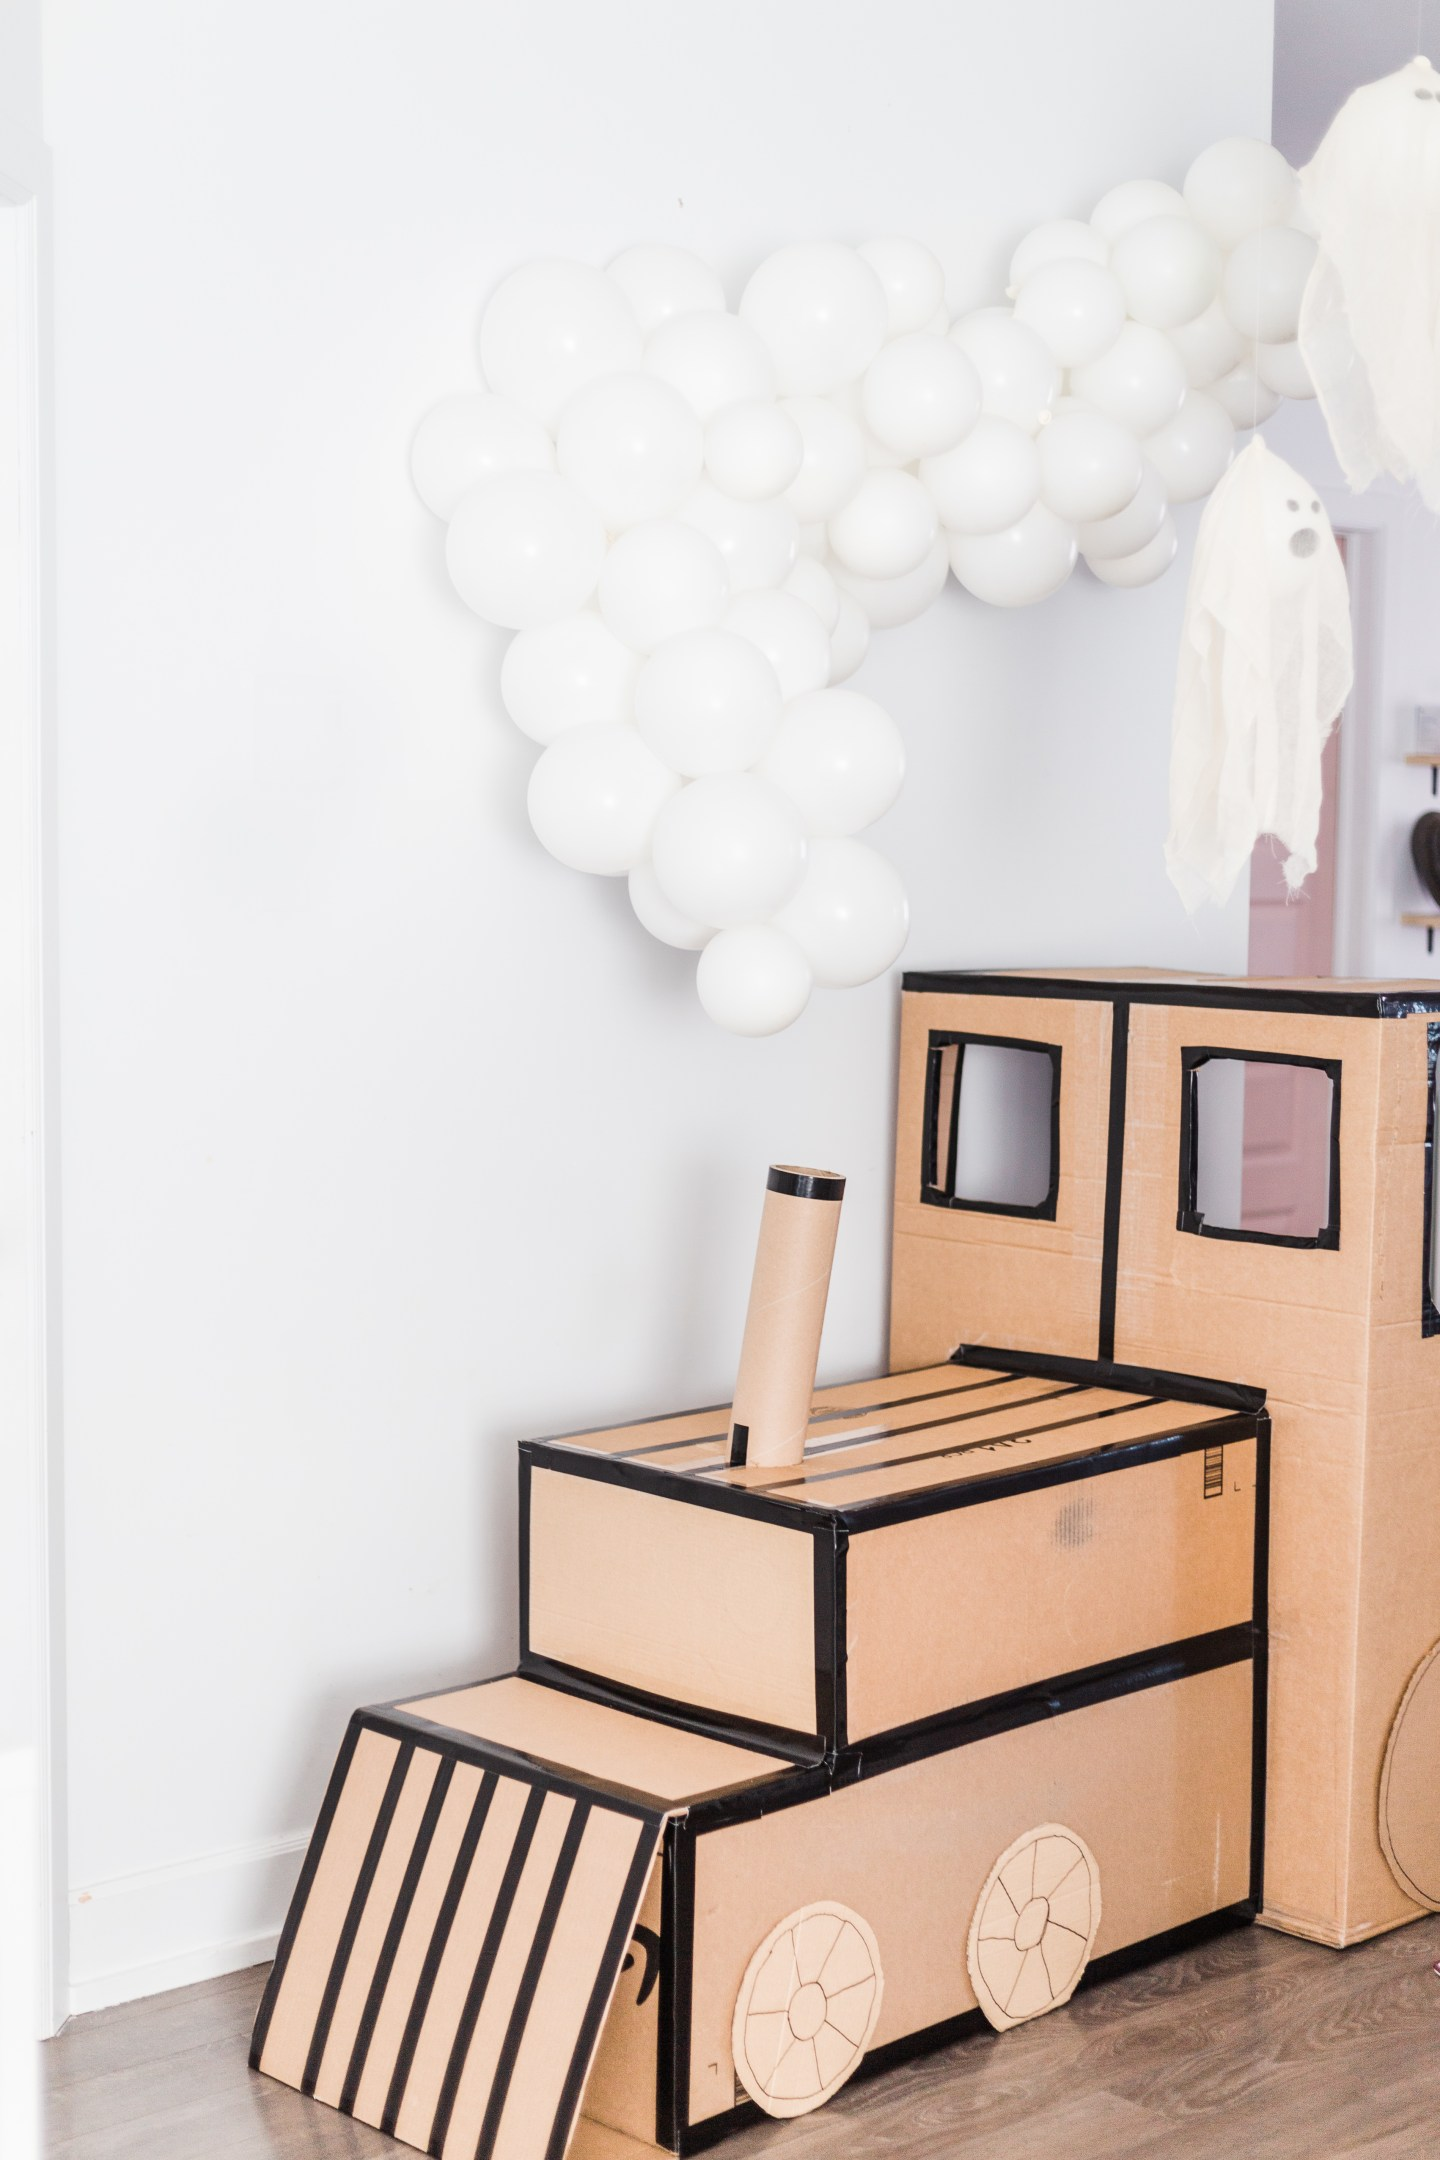 Life lately: Jude is 8 years old | Ghost kids party + Cardboard train diy | #kidshalloweenparty #ghostparty #halloweendecor #ghostdecorations #modernhalloween